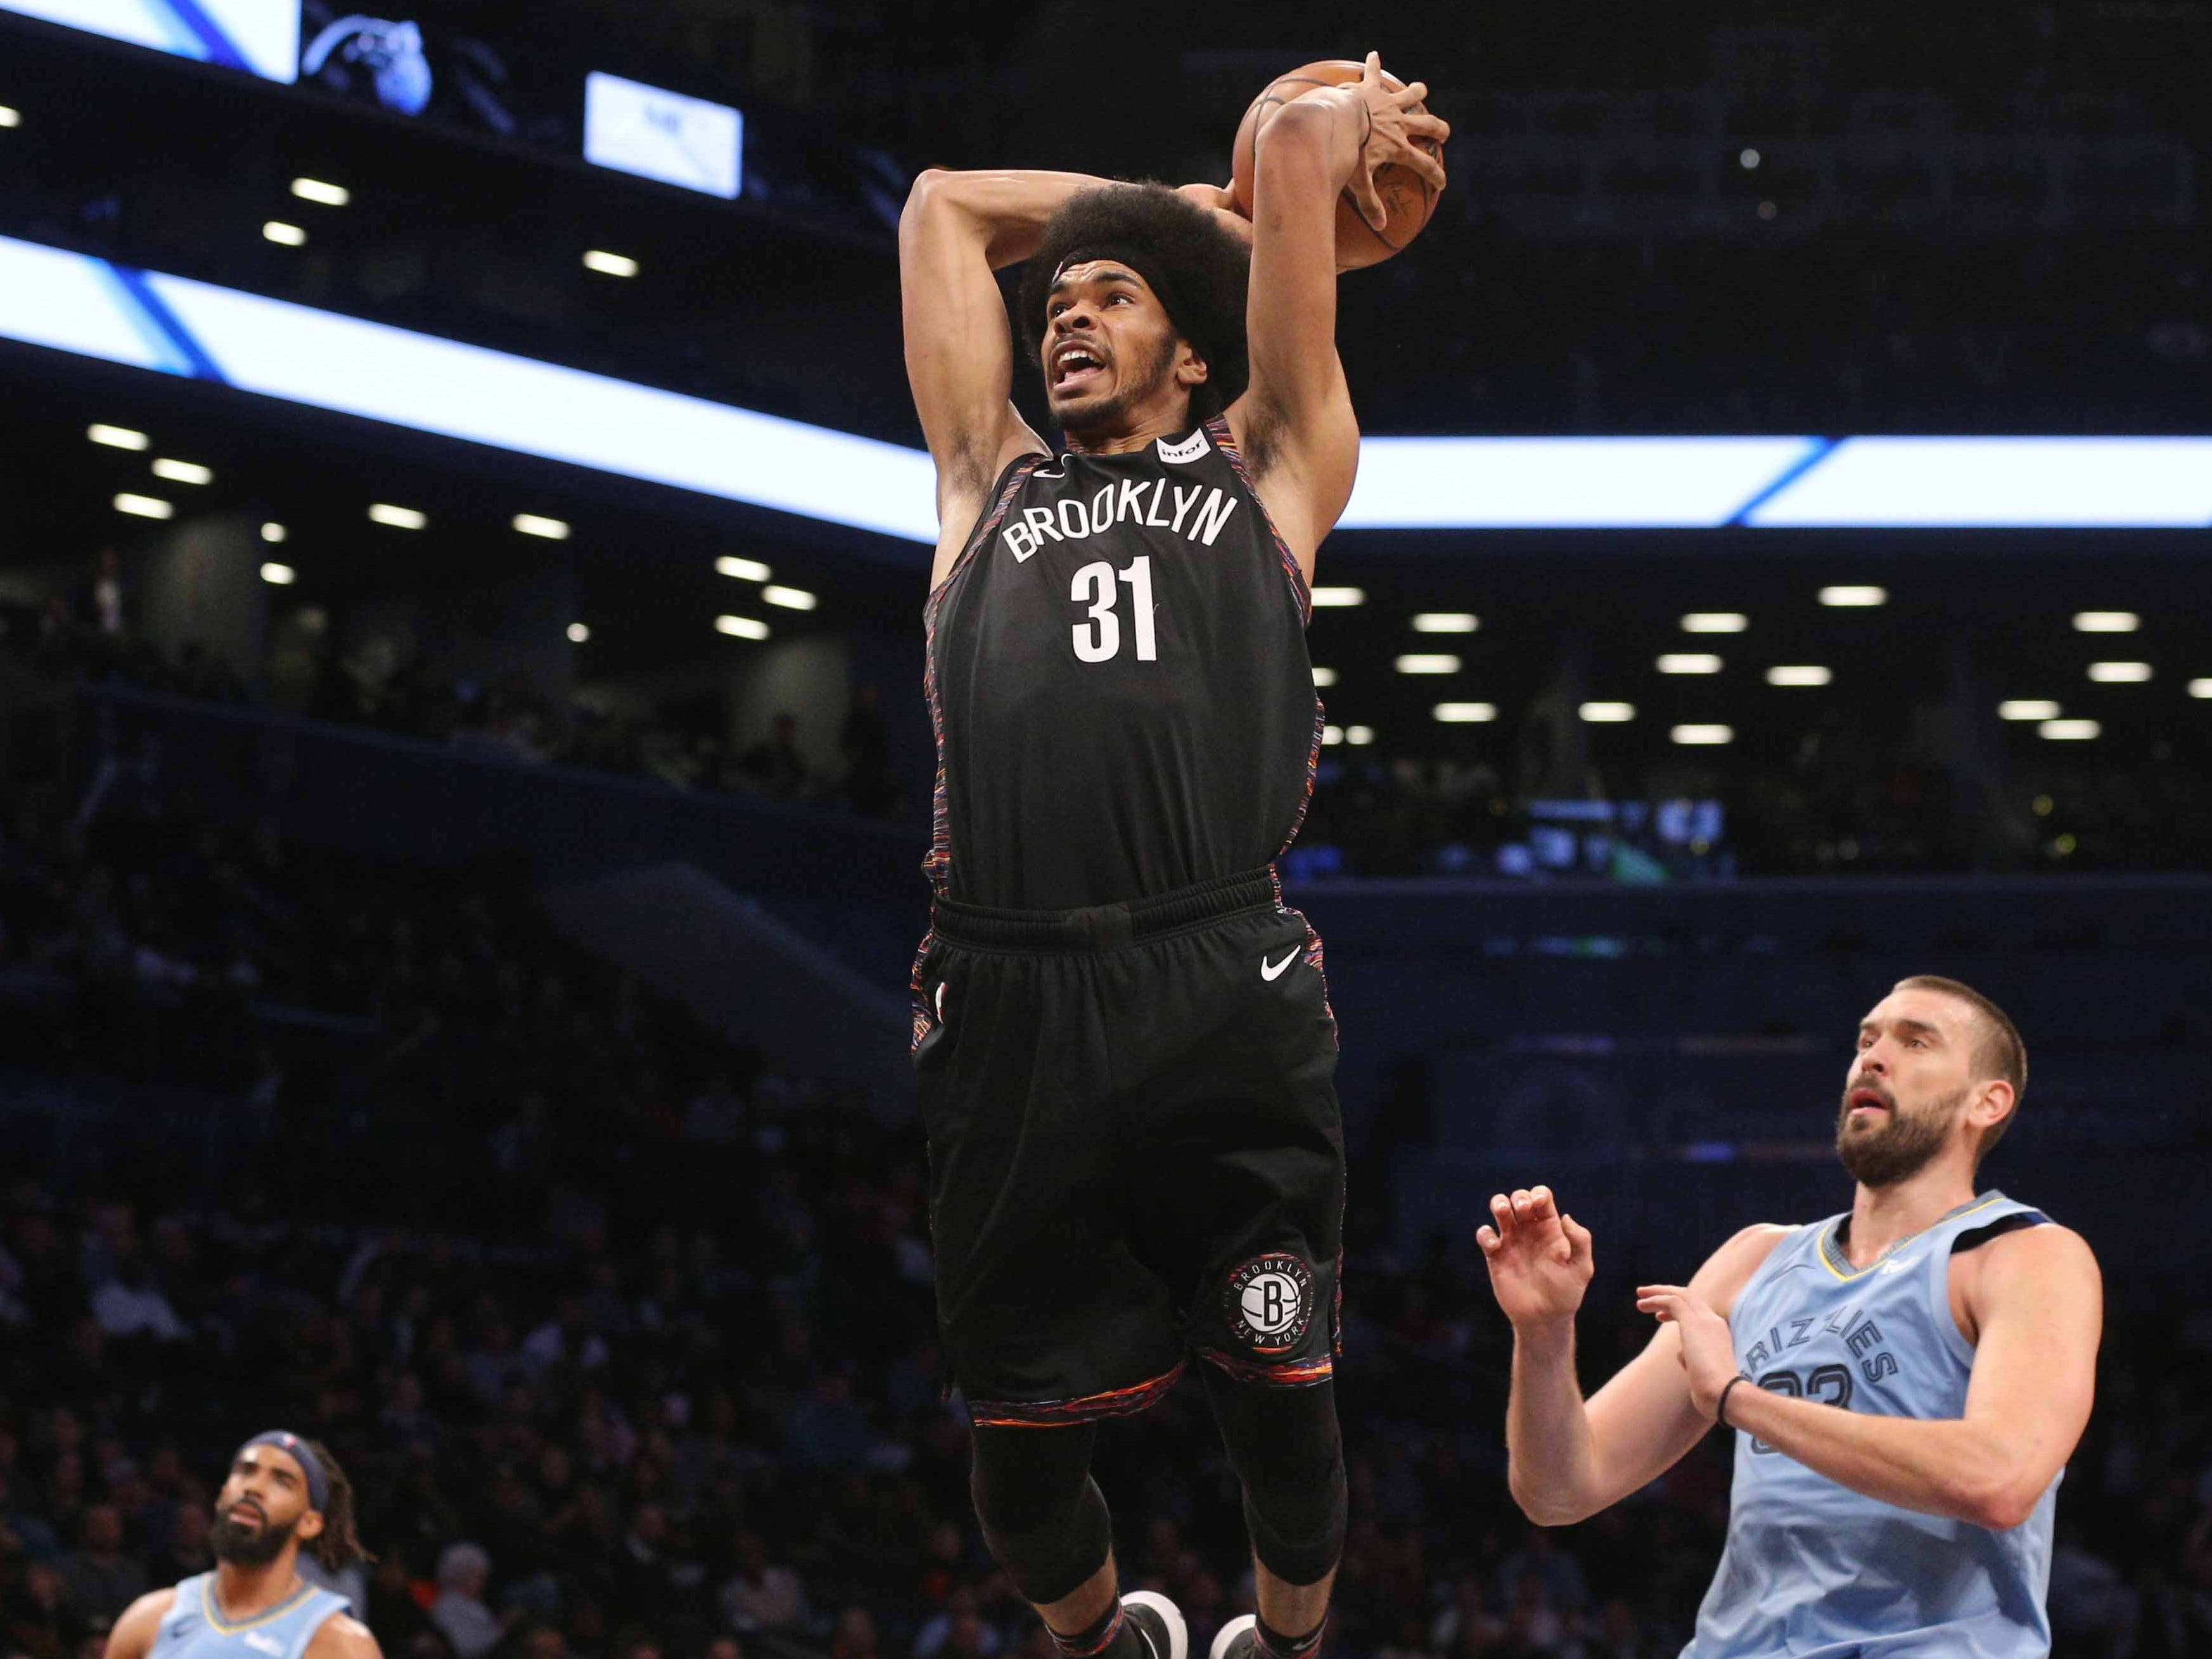 Nov. 30: Nets center Jarrett Allen rises up for a thunderous two-handed flush against the Grizzlies in Brooklyn.